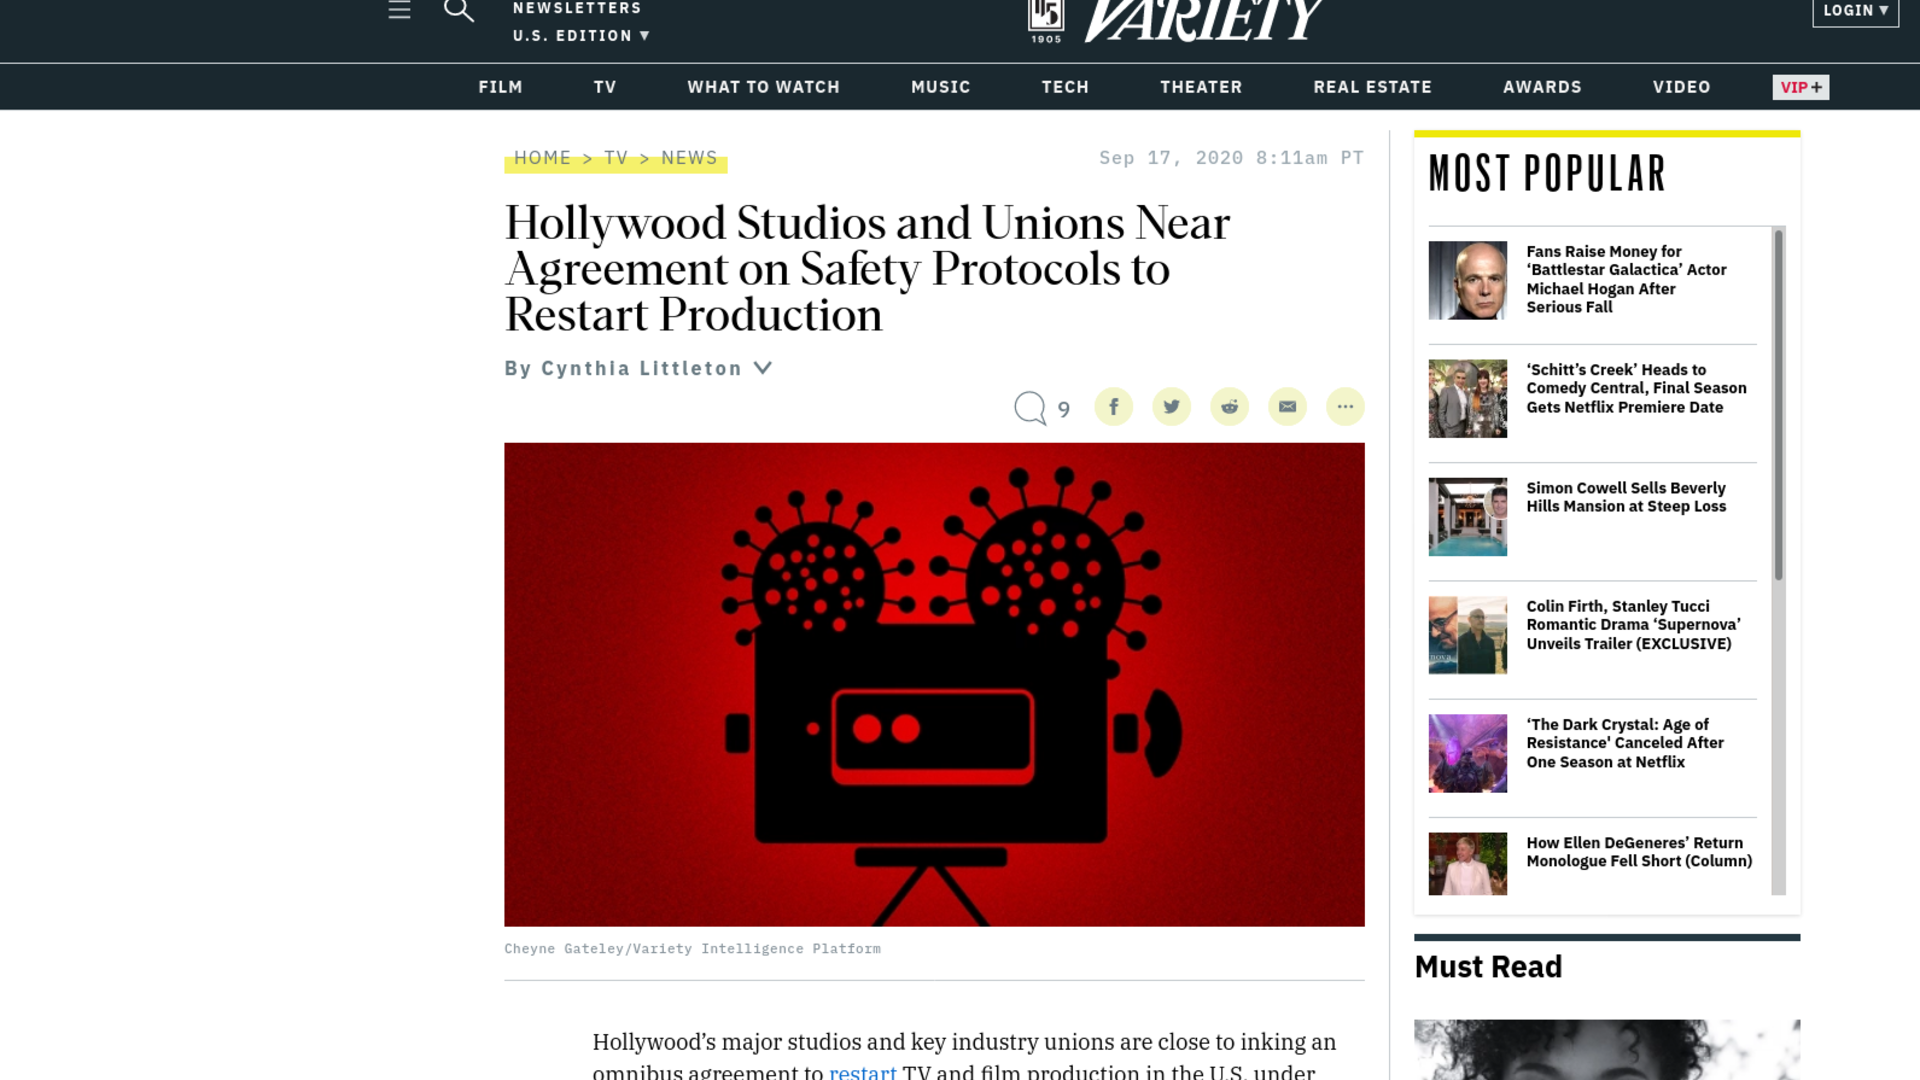 Fairness Rocks News Hollywood Studios and Unions Near Agreement on Safety Protocols to Restart Production